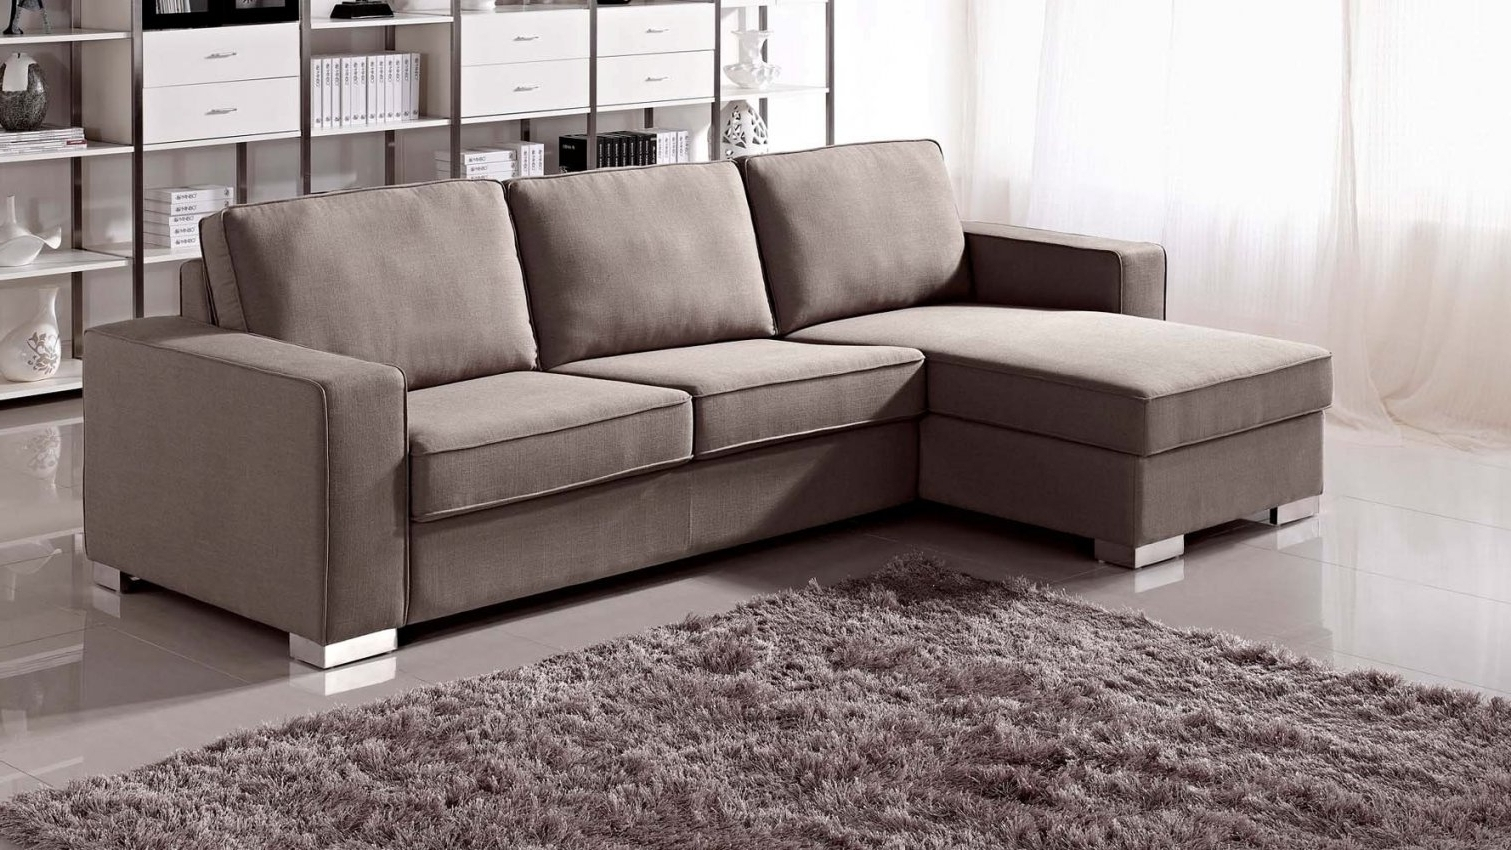 Sectional Sleeper Sofa With Chaise 29 In Sofa Design Ideas Pertaining To Current Sofa Chaise Convertible Beds (View 6 of 15)